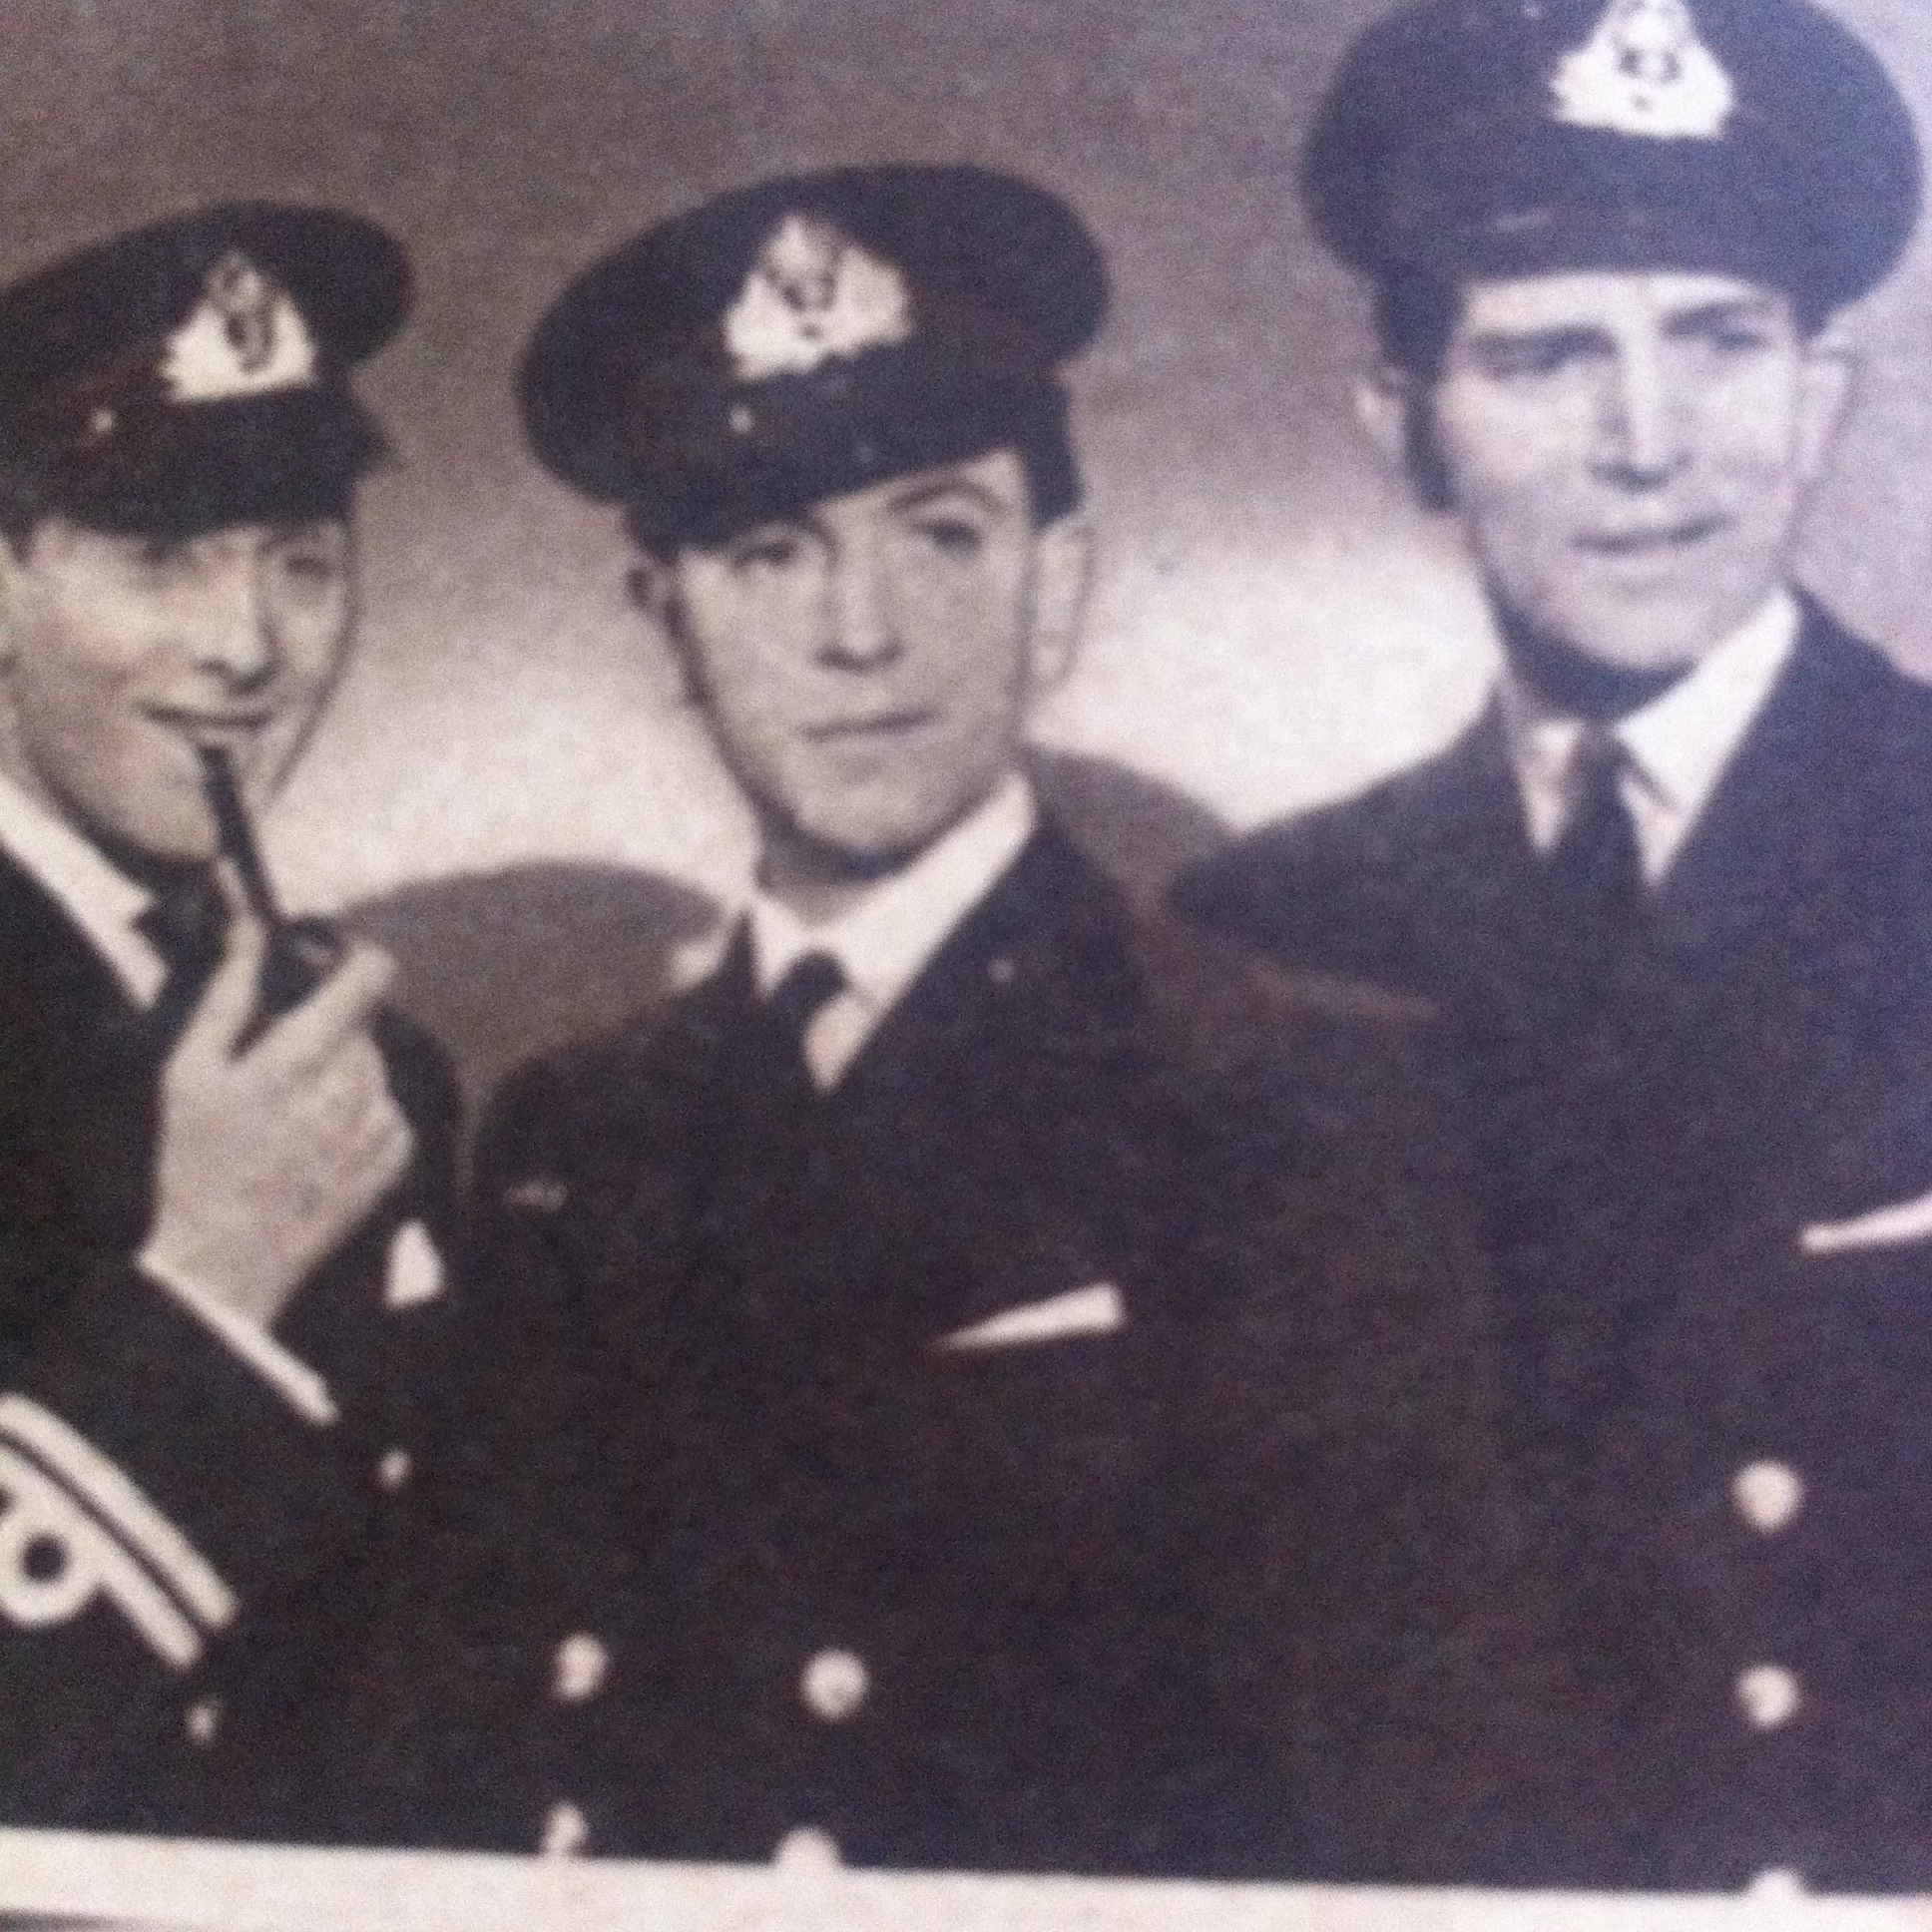 John Clements, Michael Rennie, and Michael Wilding in Ships with Wings (1941)